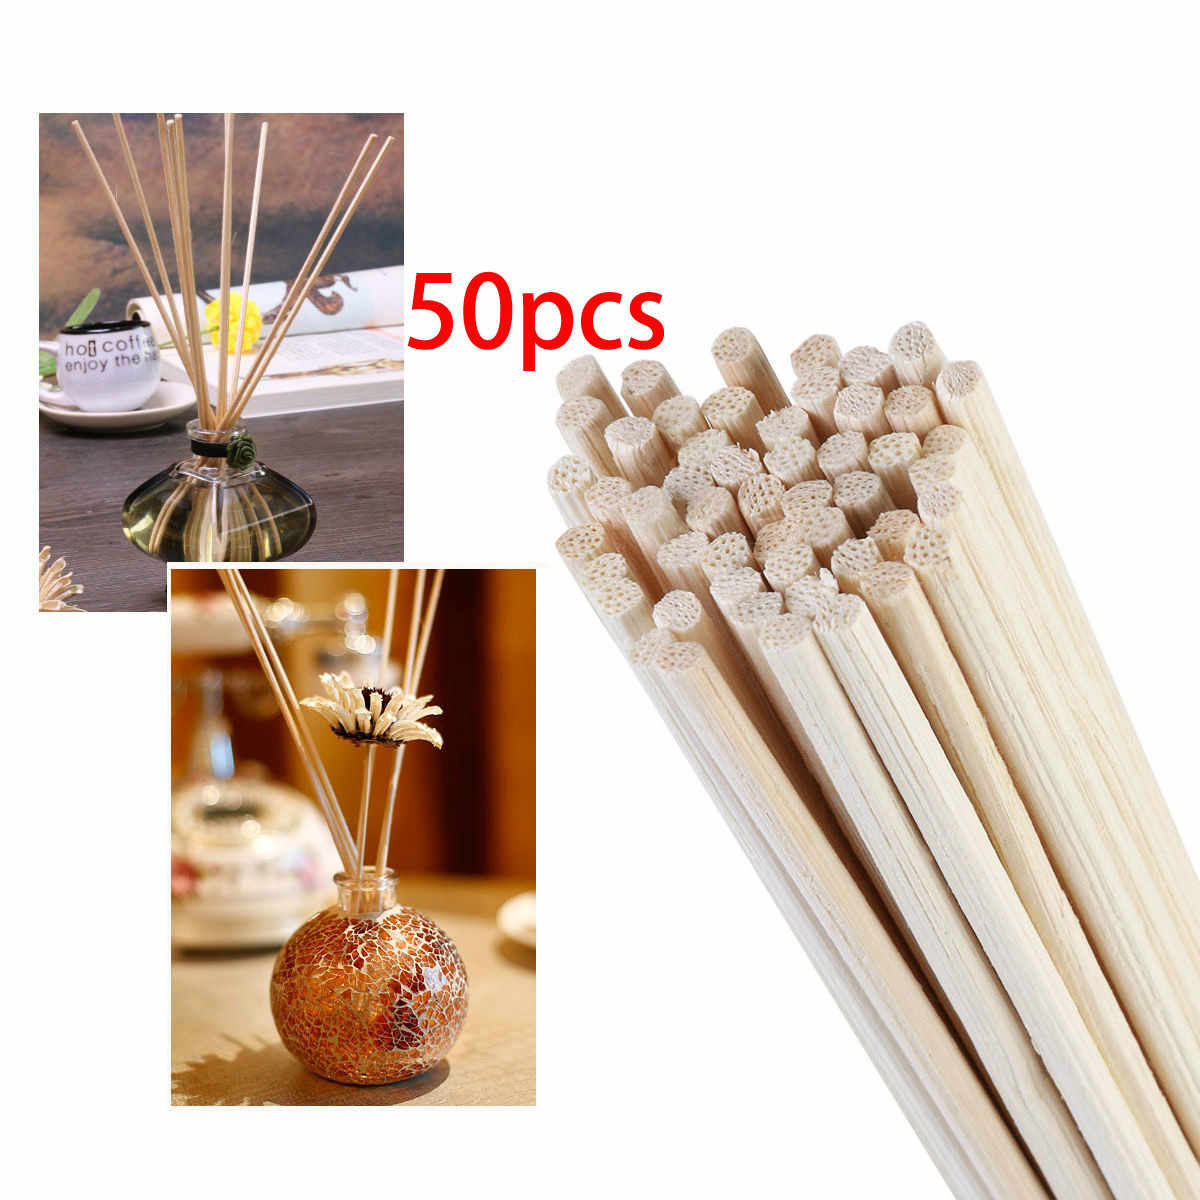 50pcs Aroma Diffuser Replacement Rattan Reed Sticks